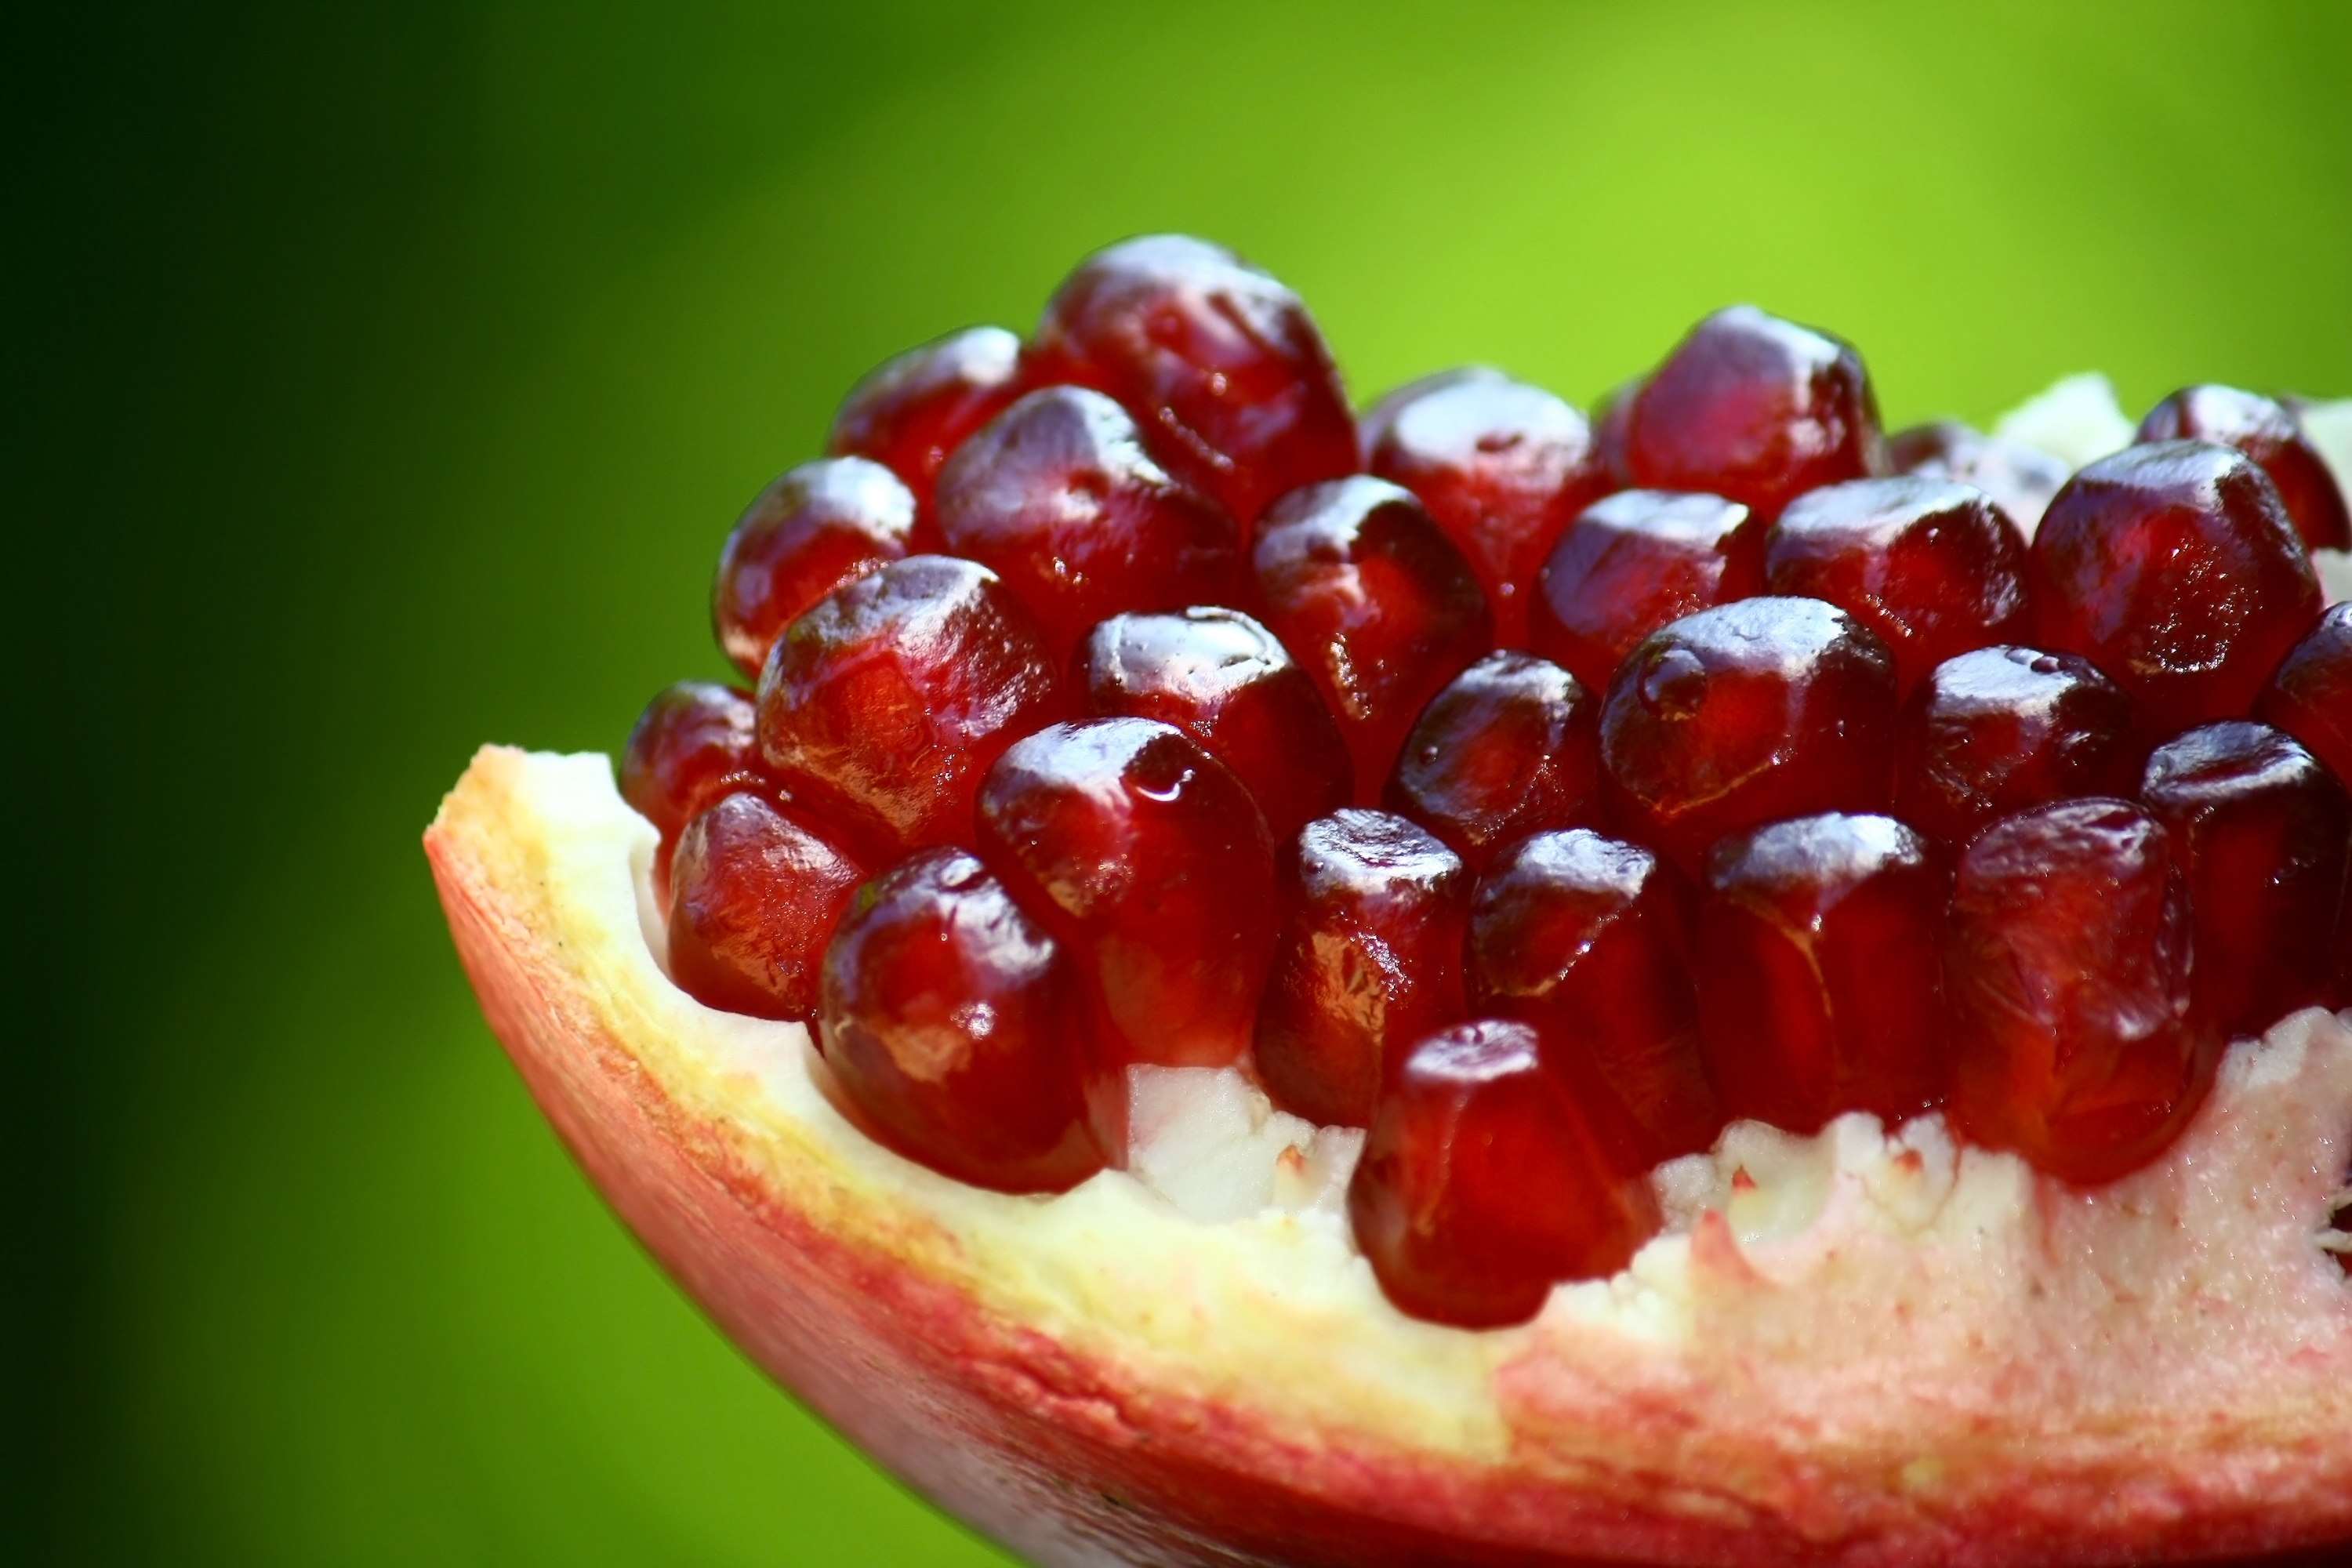 Pomegranate - Wikipedia, the free encyclopedia